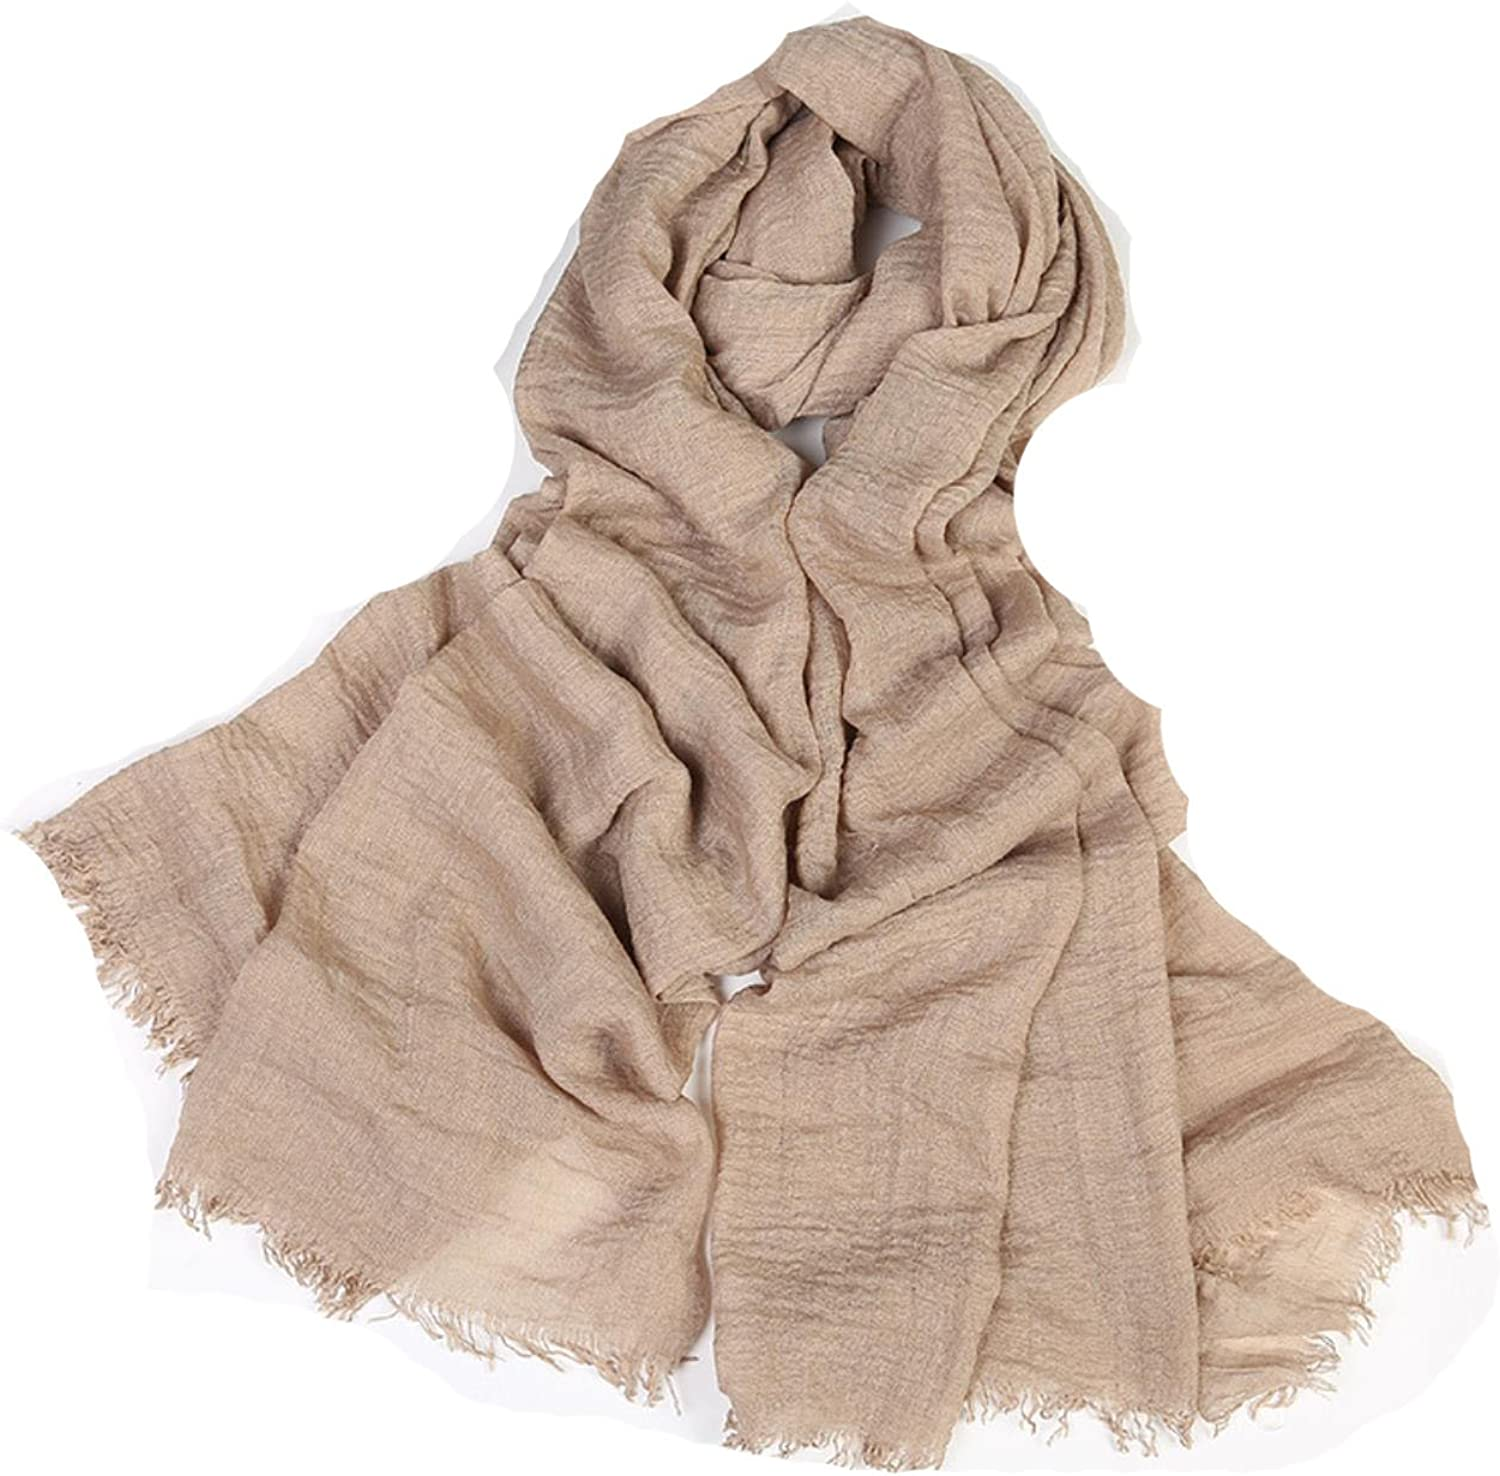 Twill cotton scarf stone print muslim hijab with tassels pashmina shawls Pure sunscreen scarves beach towel sp